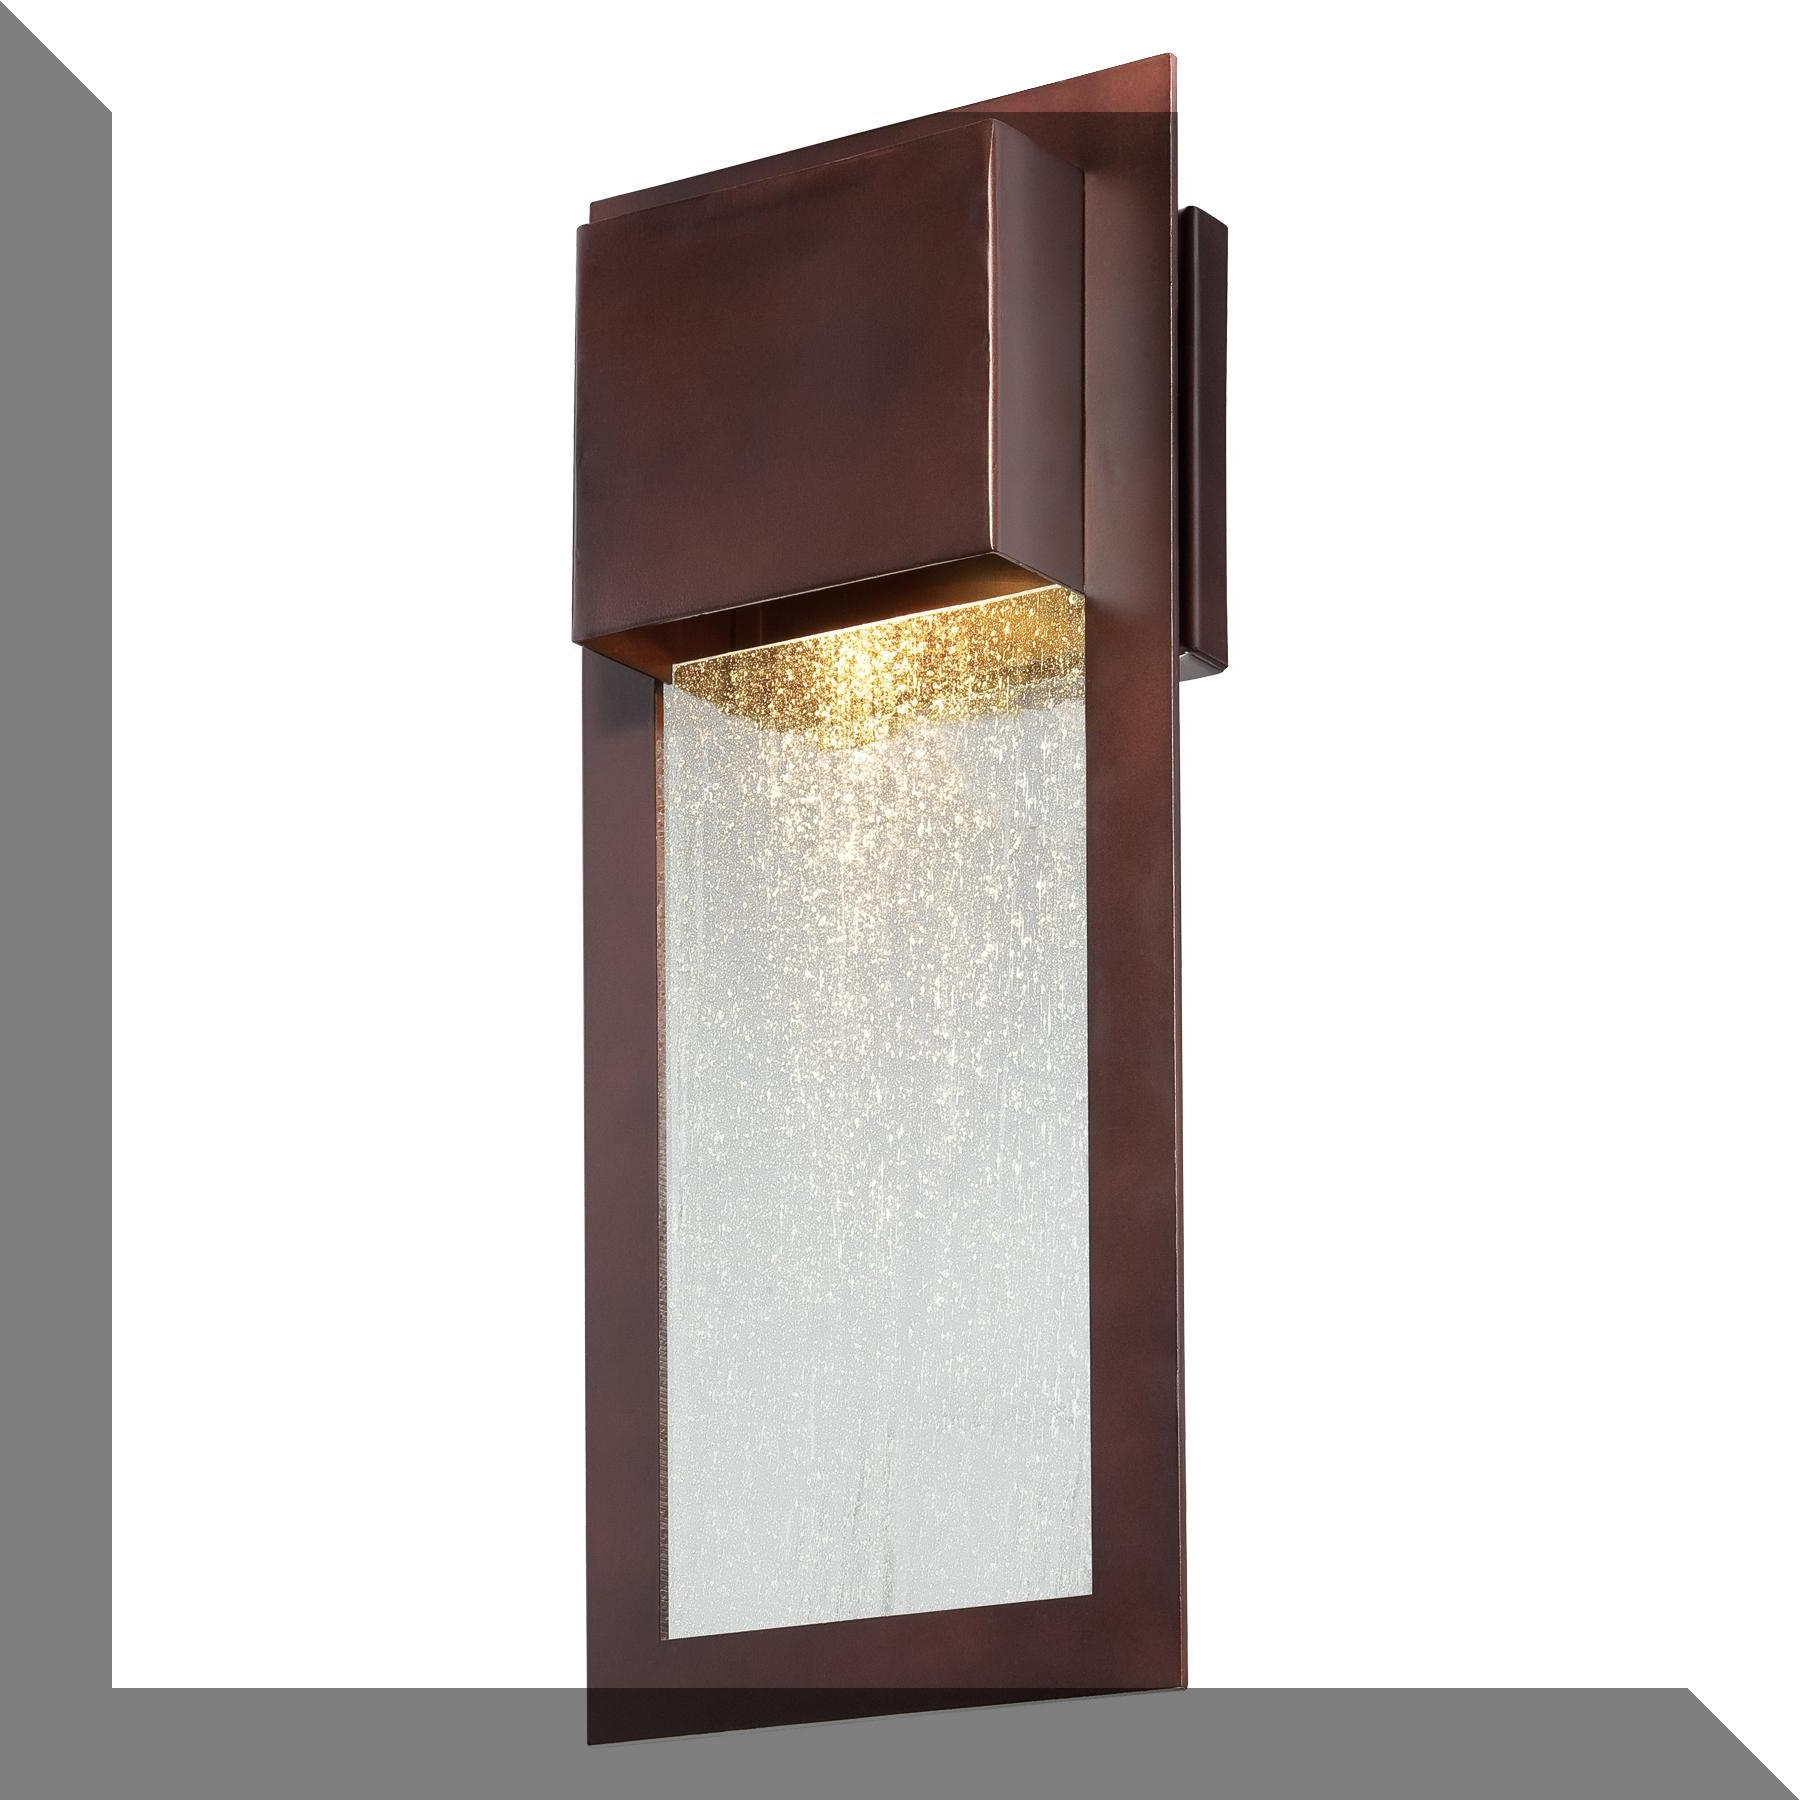 2018 Asian Outdoor Wall Lighting Intended For And Oriental Outdoor Lighting Fixtures (View 11 of 20)